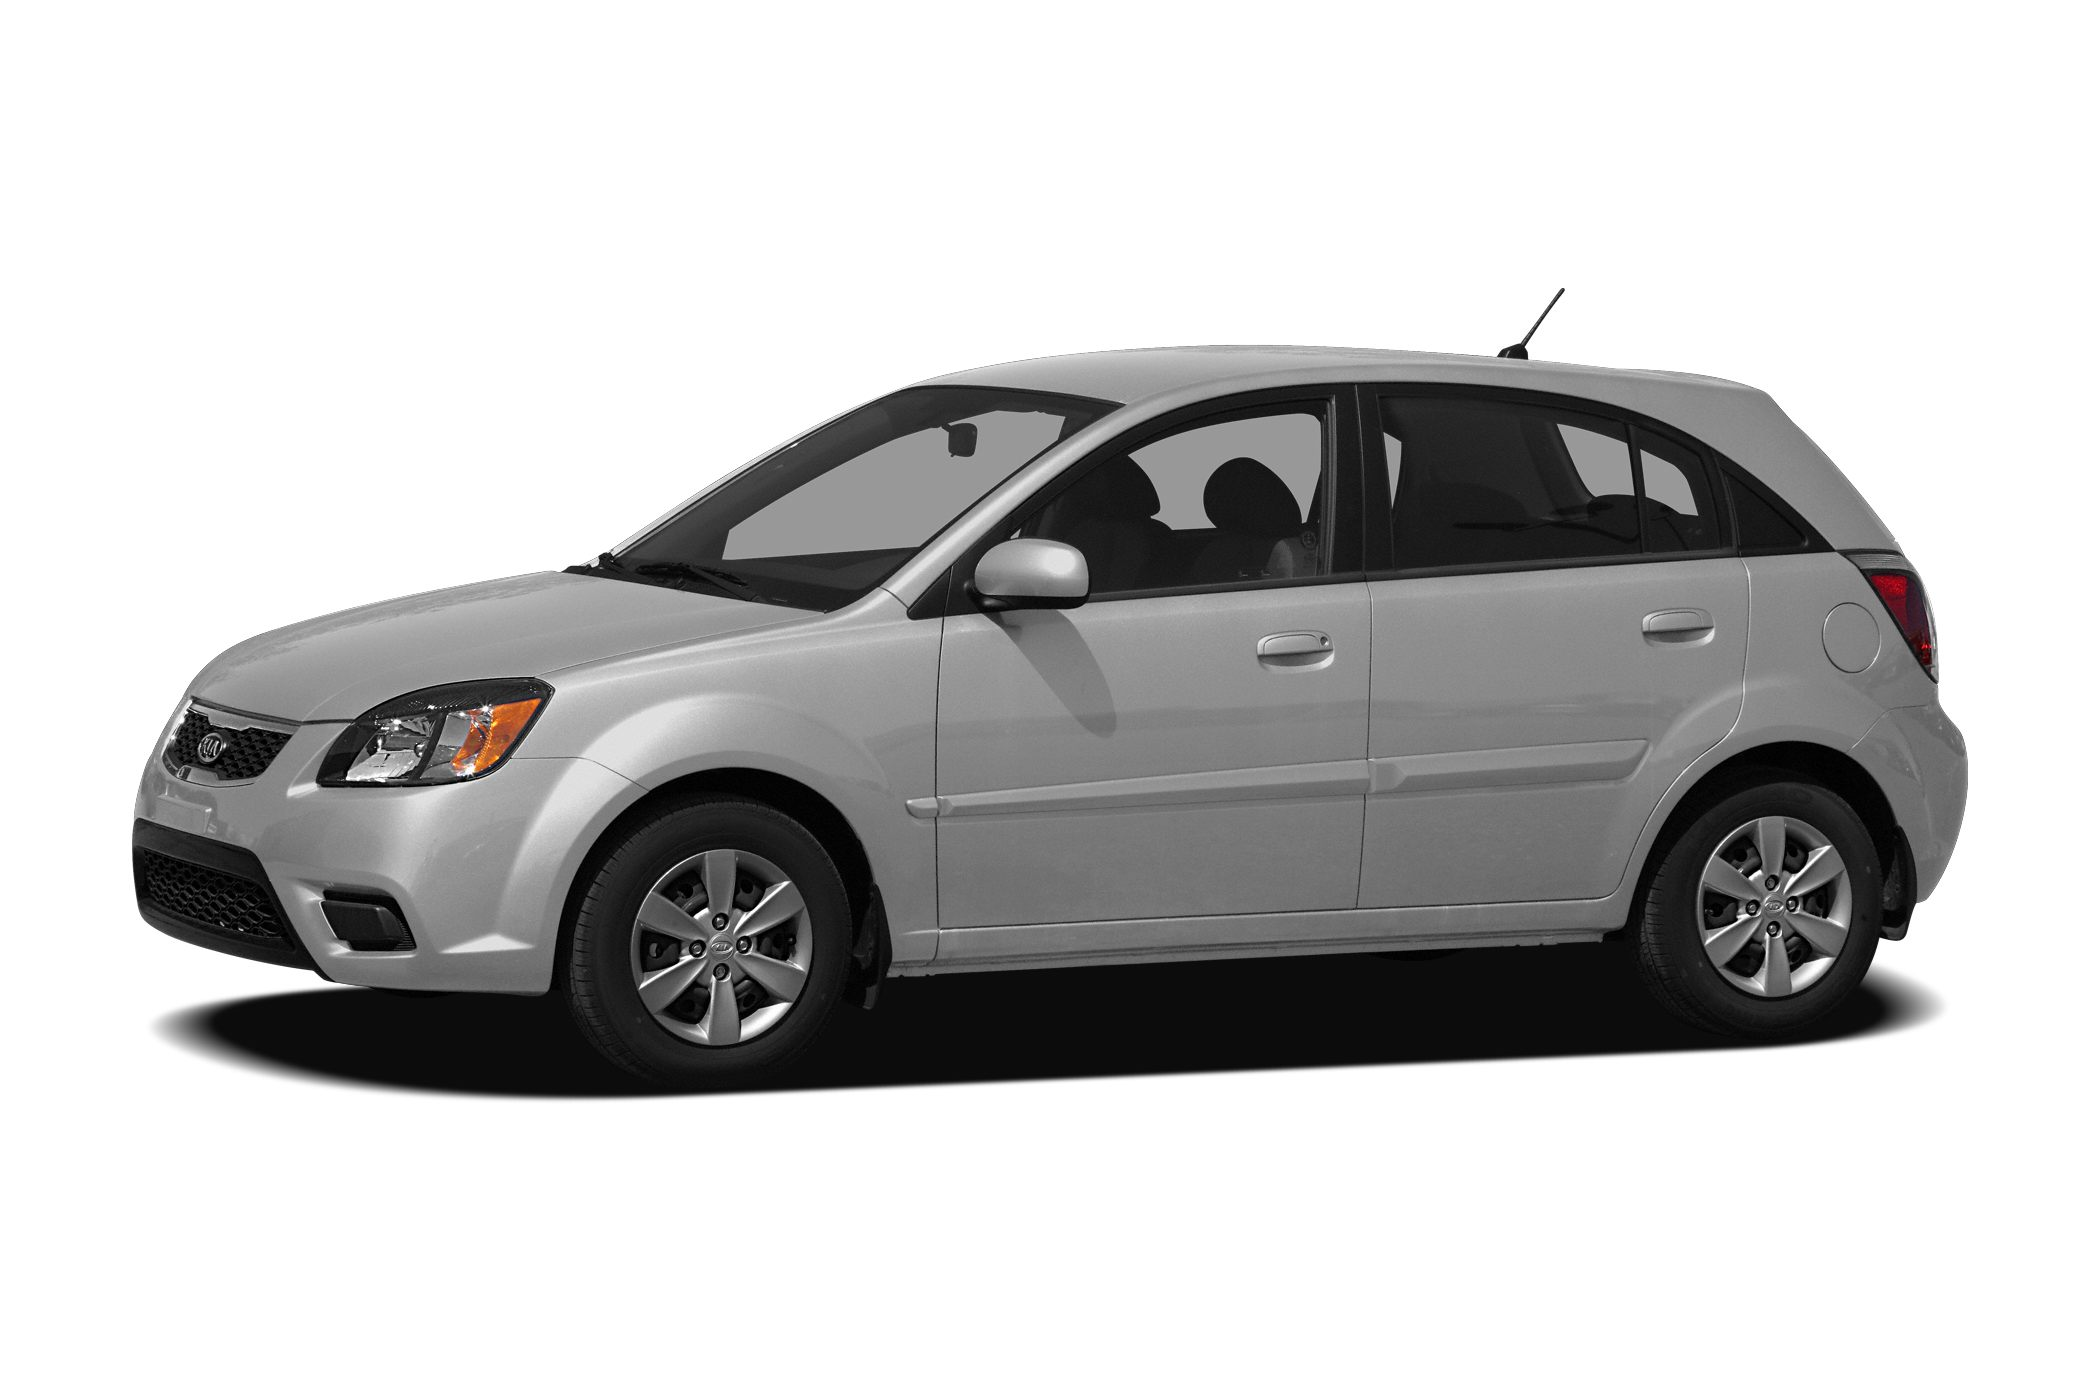 2010 Kia Rio5 LX Hatchback for sale in Memphis for $8,995 with 47,900 miles